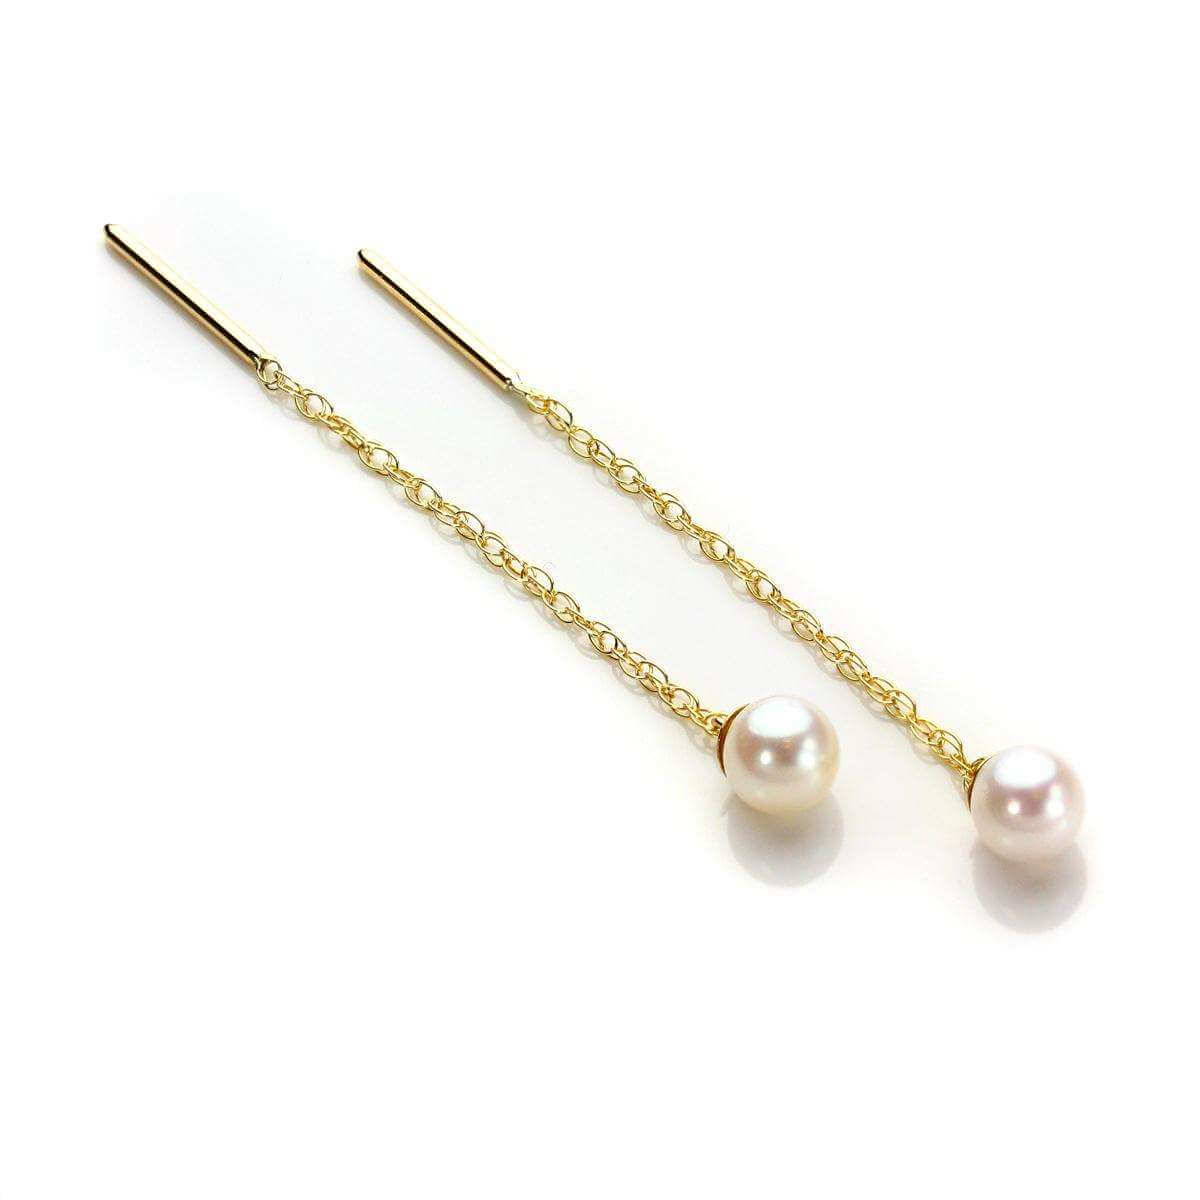 9ct Yellow Gold Pearl Pull Through Earrings